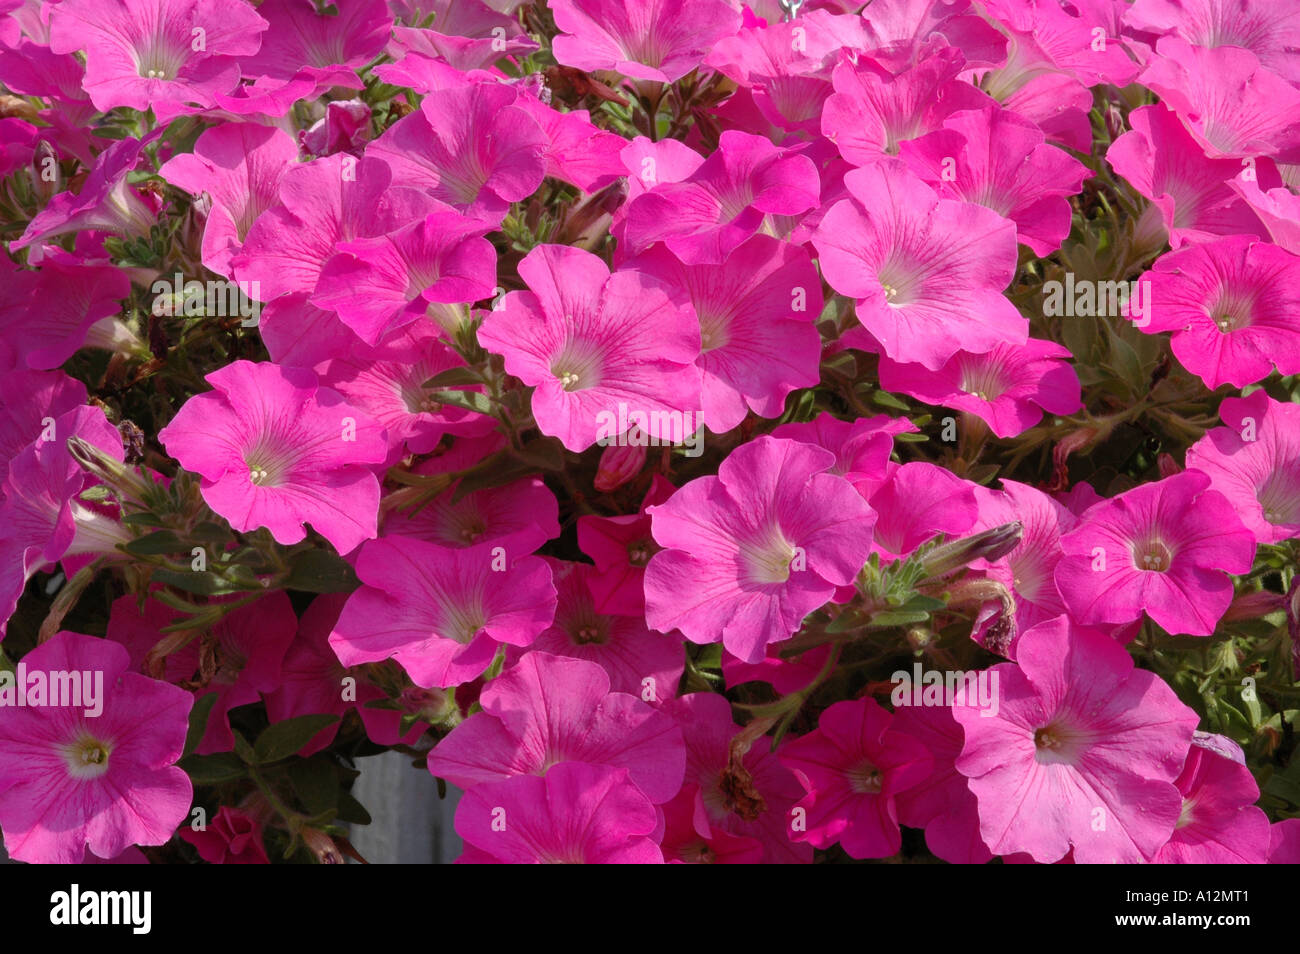 Ampel petunia is one of the popular types of garden flowers 50